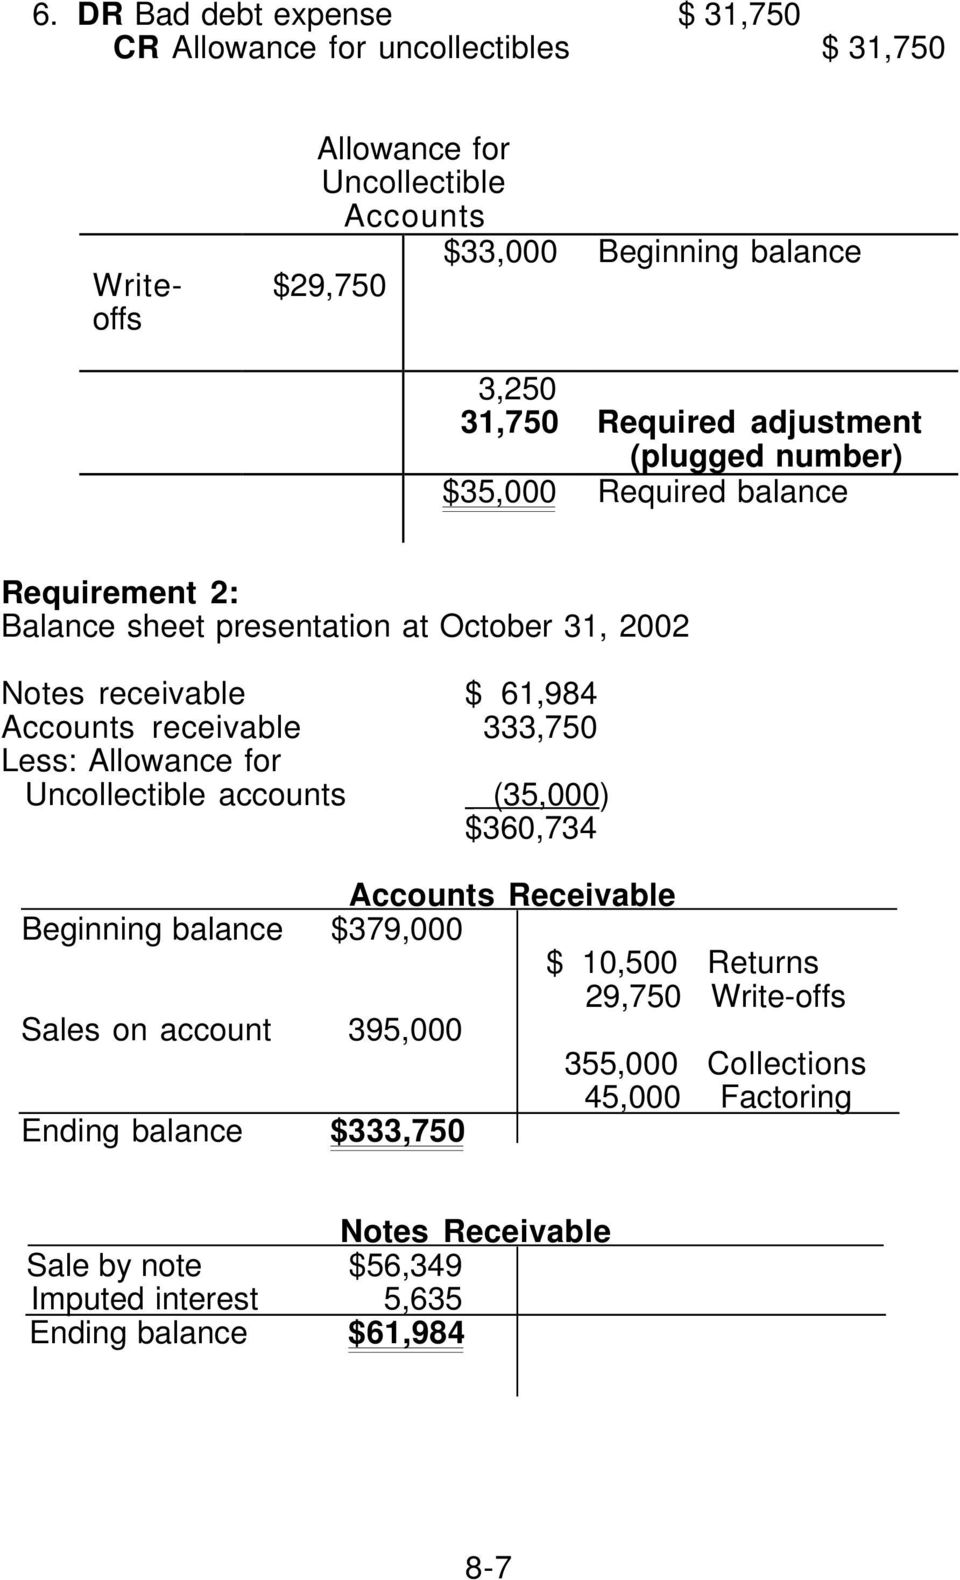 receivable 333,750 Less: Allowance for Uncollectible accounts (35,000 ) $360,734 Accounts Receivable Beginning balance $379,000 $ 10,500 Returns 29,750 Write-offs